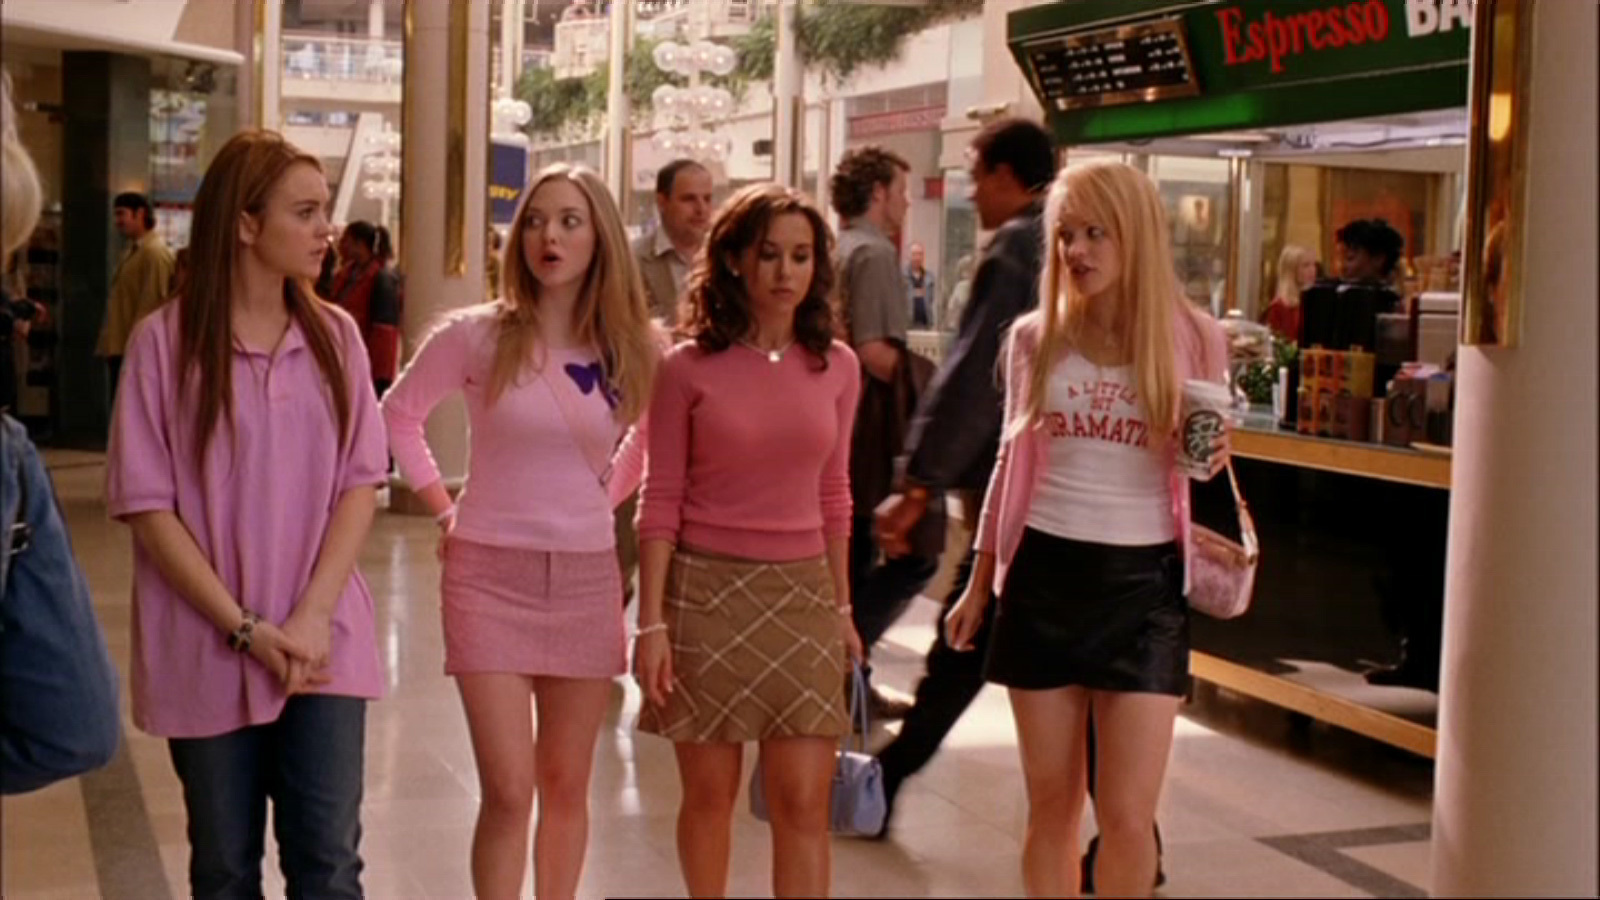 film analysis of the movie mean girls While the film mean girls is predominantly a film about teenage girls, much of the film has to do with sexualized male-female relationships.